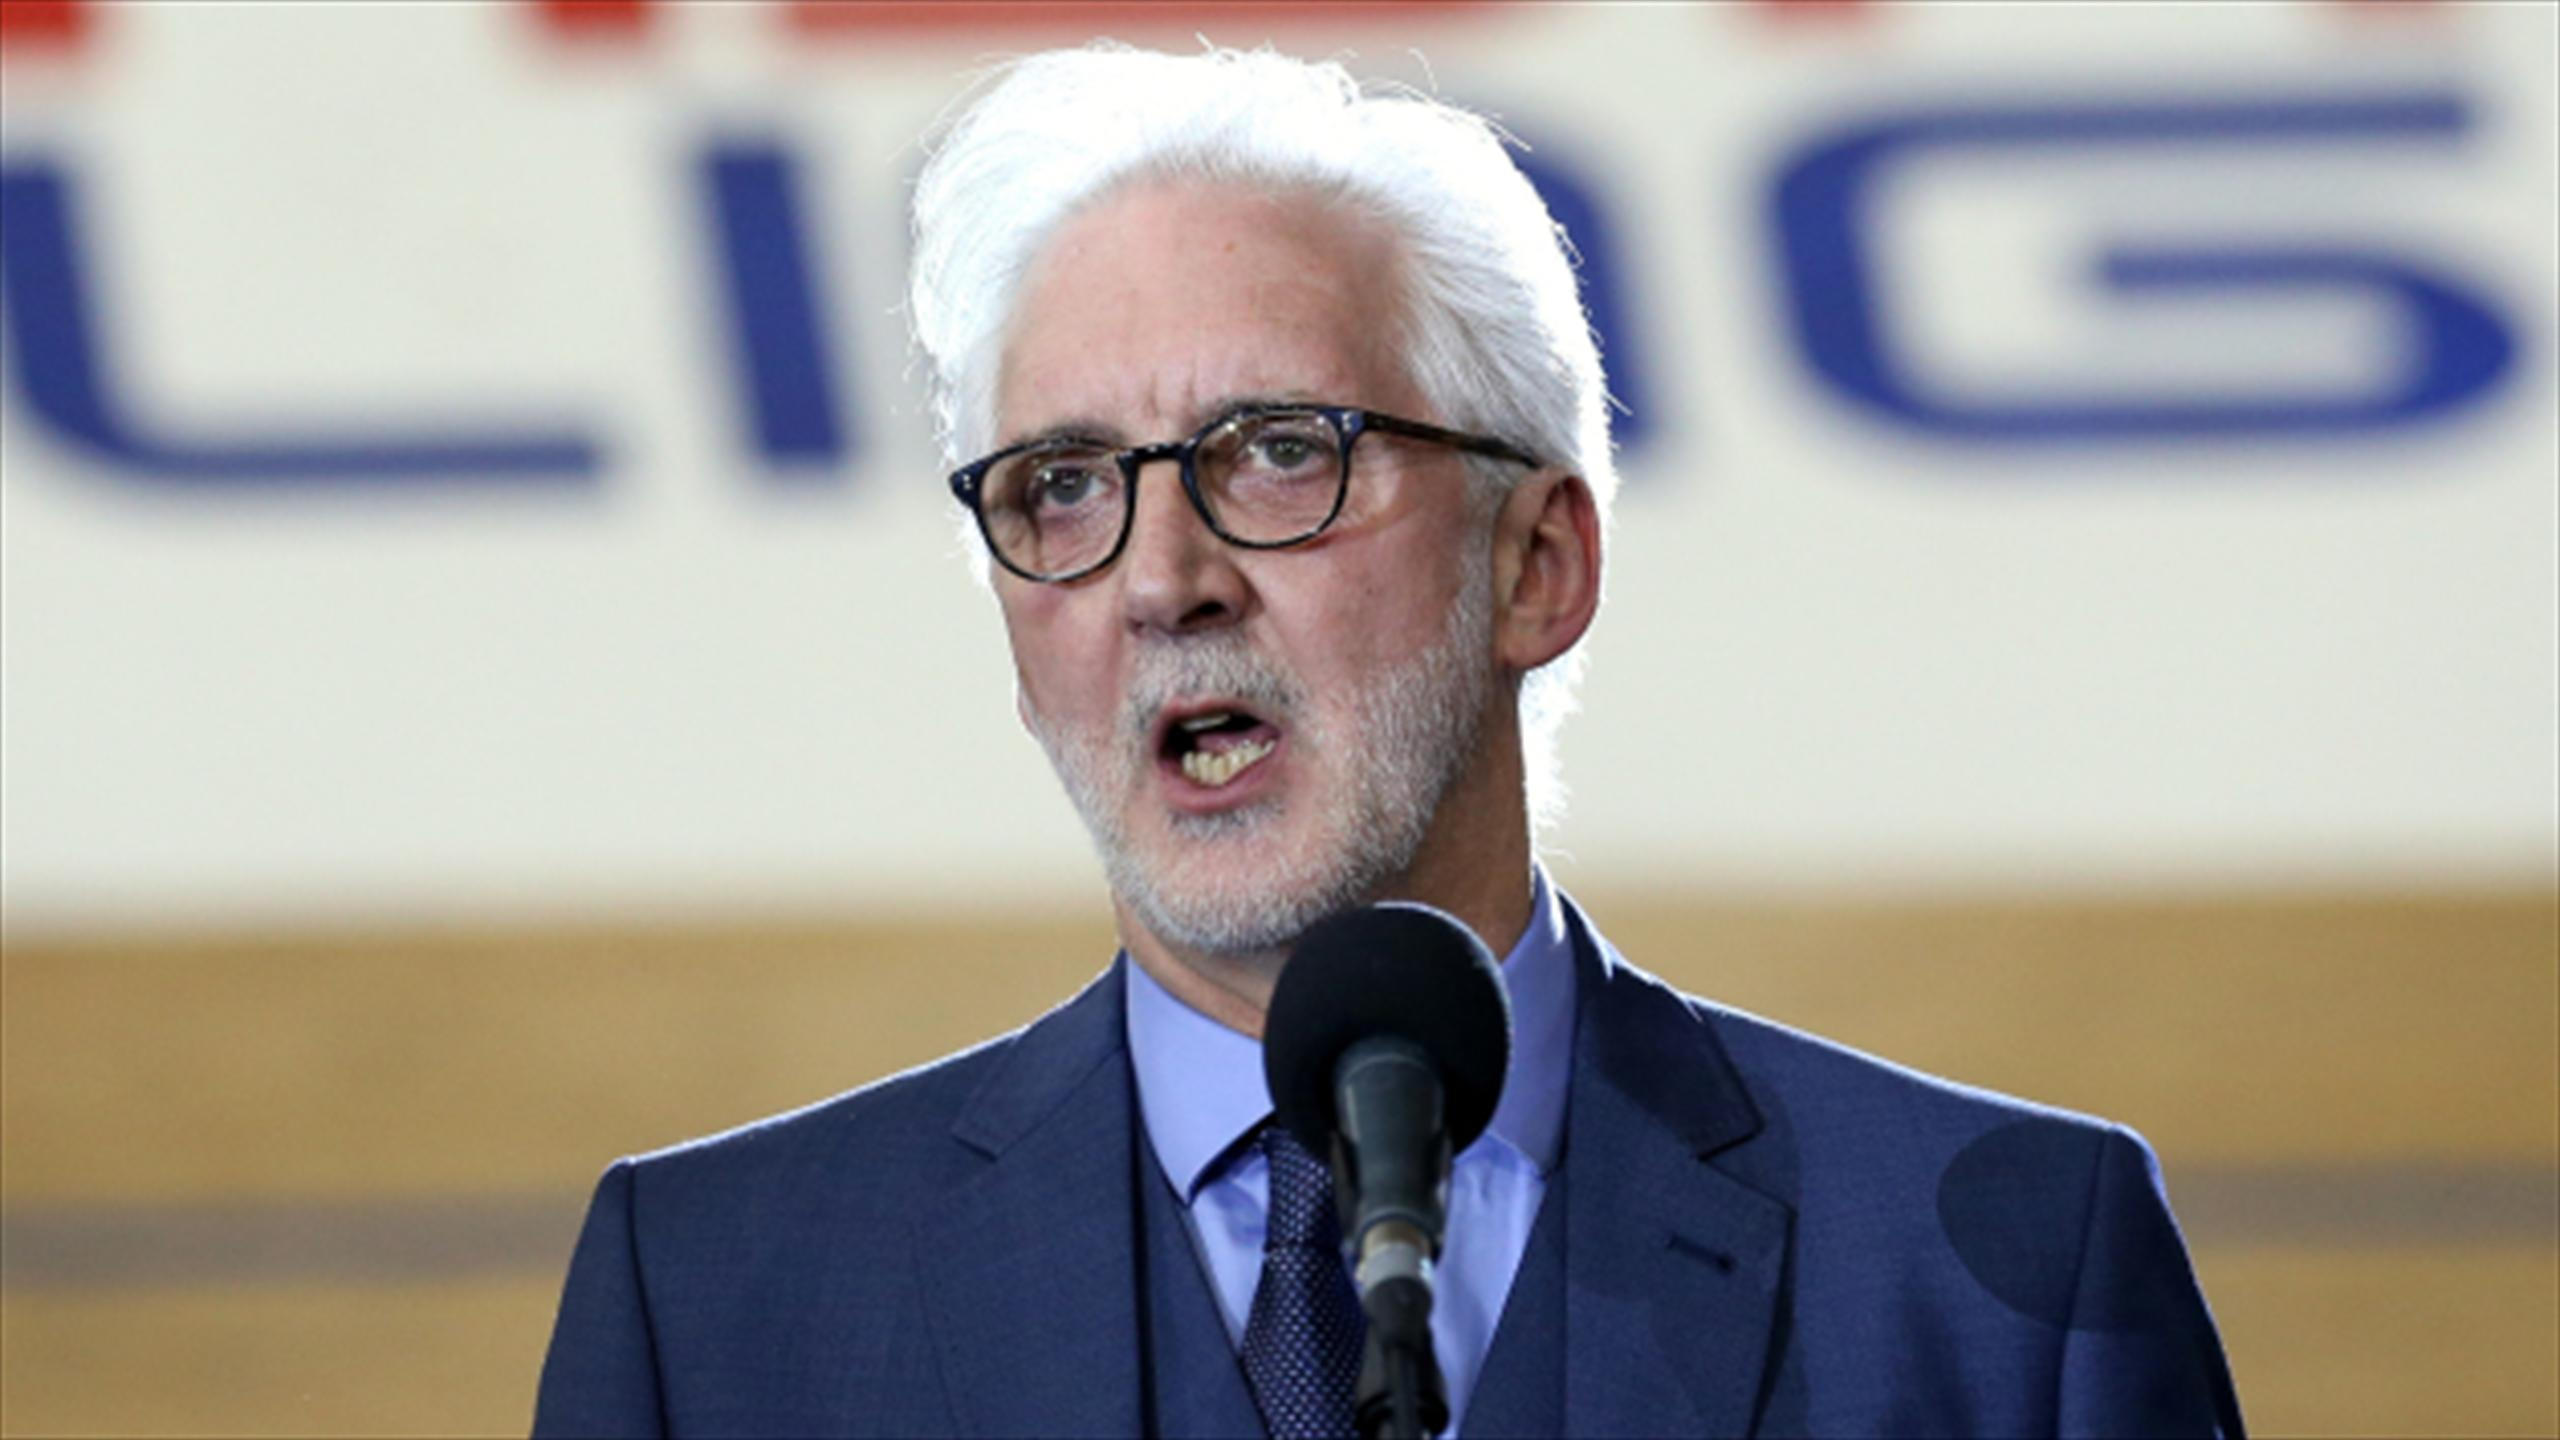 Thumbnail Credit (eurosport.co.uk): Cookson served as its president from 1997 to 2013, having saved it from bankruptcy in 1996, and now fulfils the same role with world governing body the UCI .